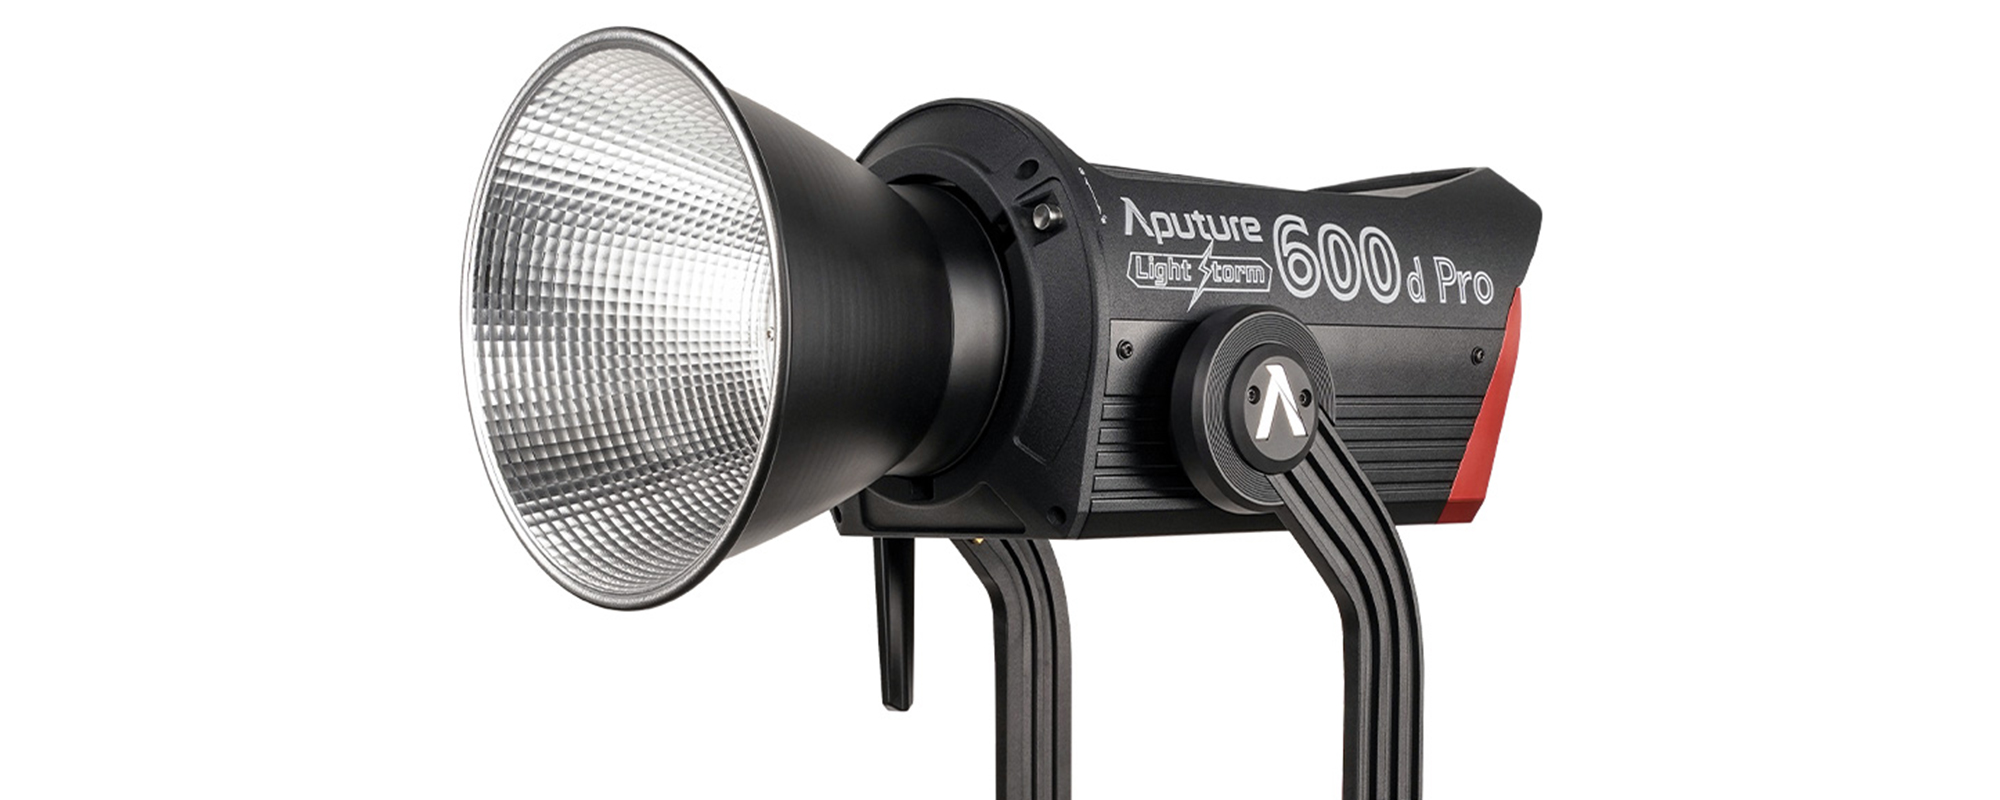 Lampa LED Aputure Light Storm LS 600d Pro - V-mount